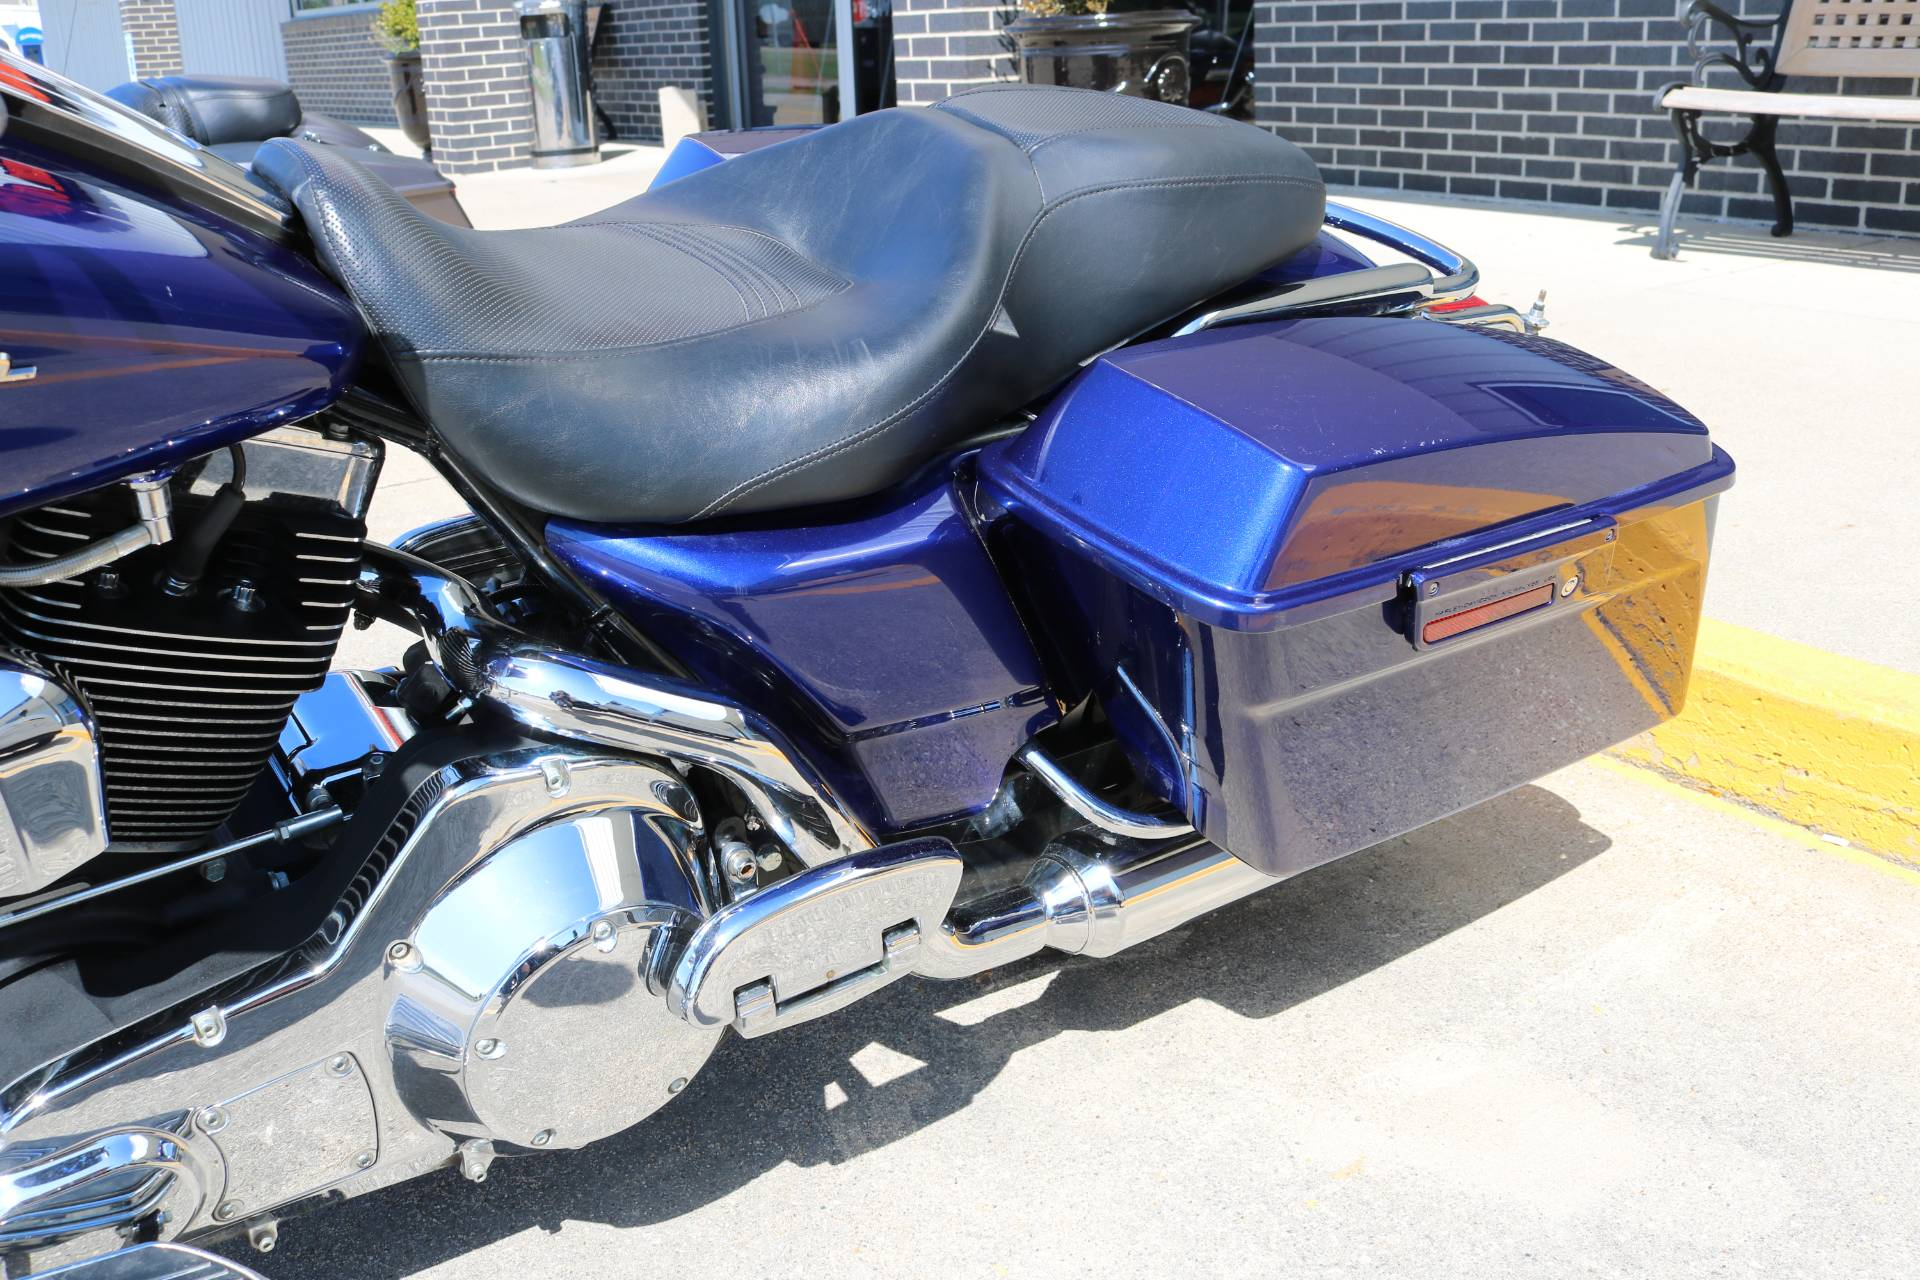 2006 Harley-Davidson Street Glide™ in Carroll, Iowa - Photo 3